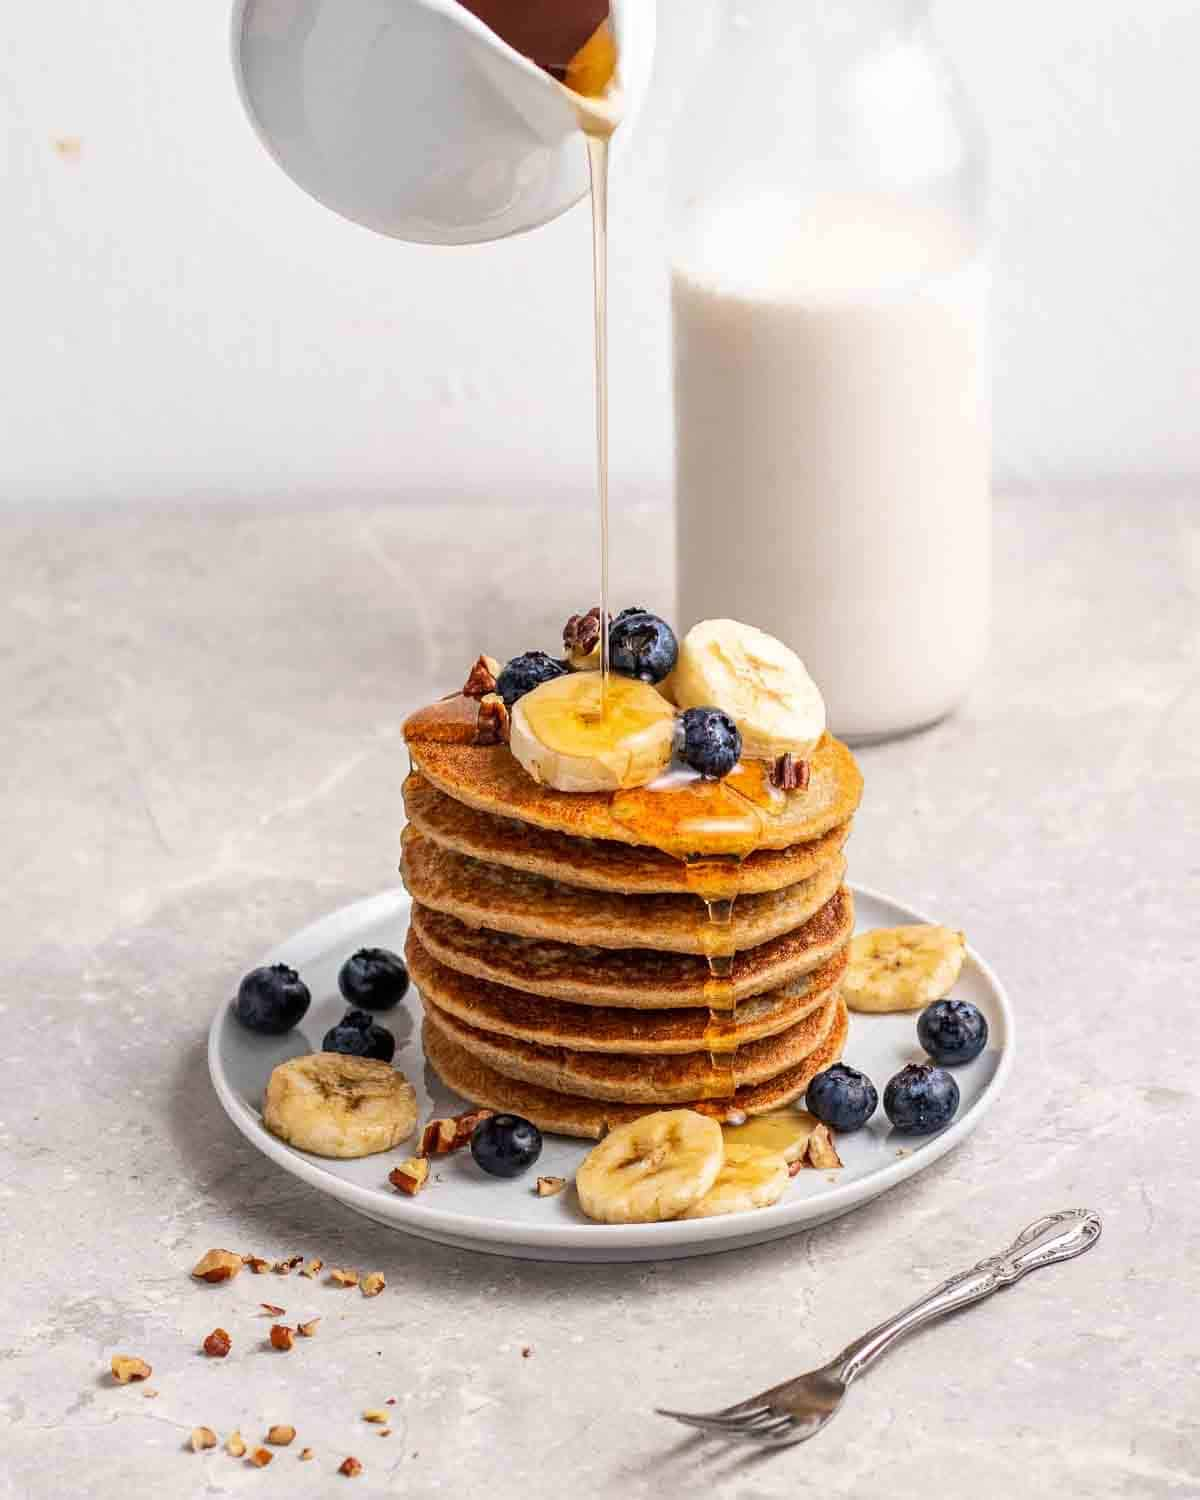 Pouring maple syrup on a stack of pancakes with a fork beside.